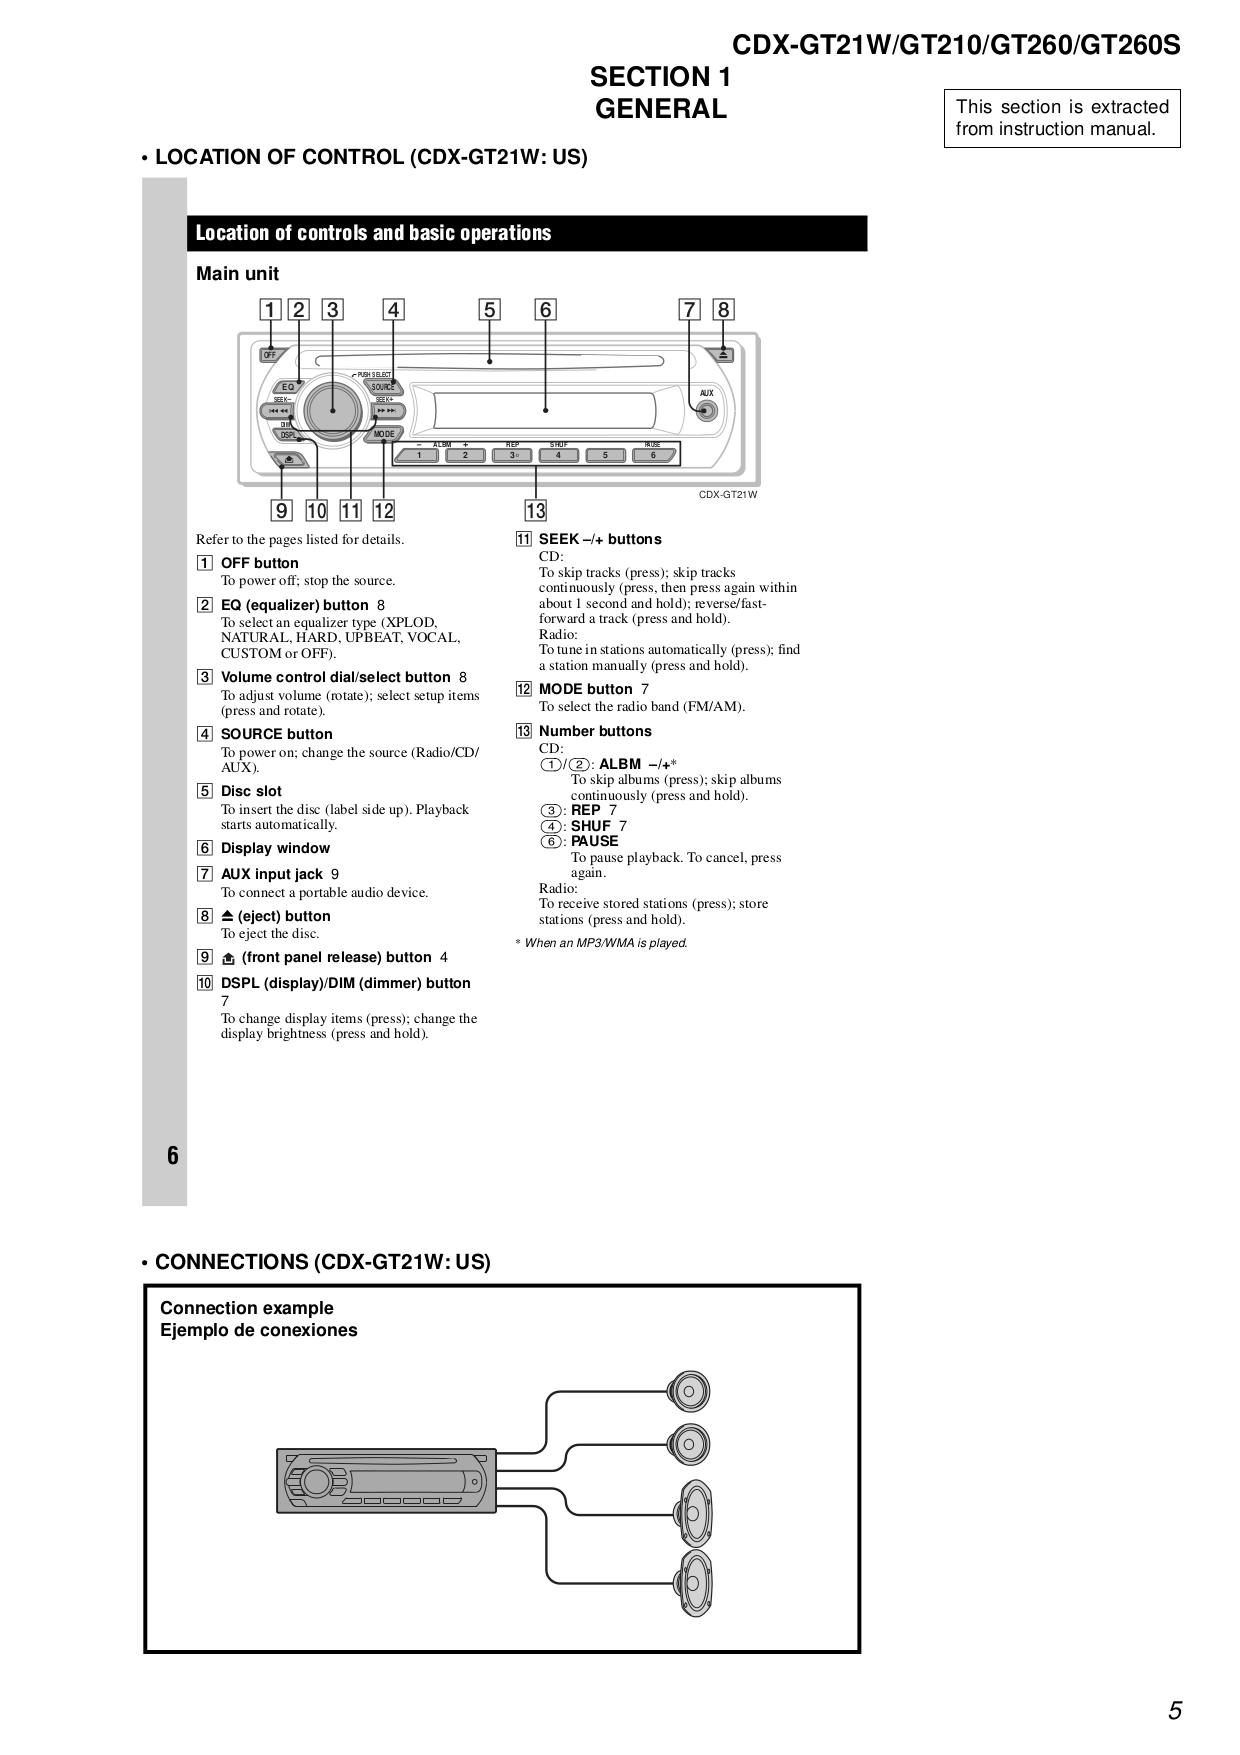 car stereo wiring diagram for cdx gt210